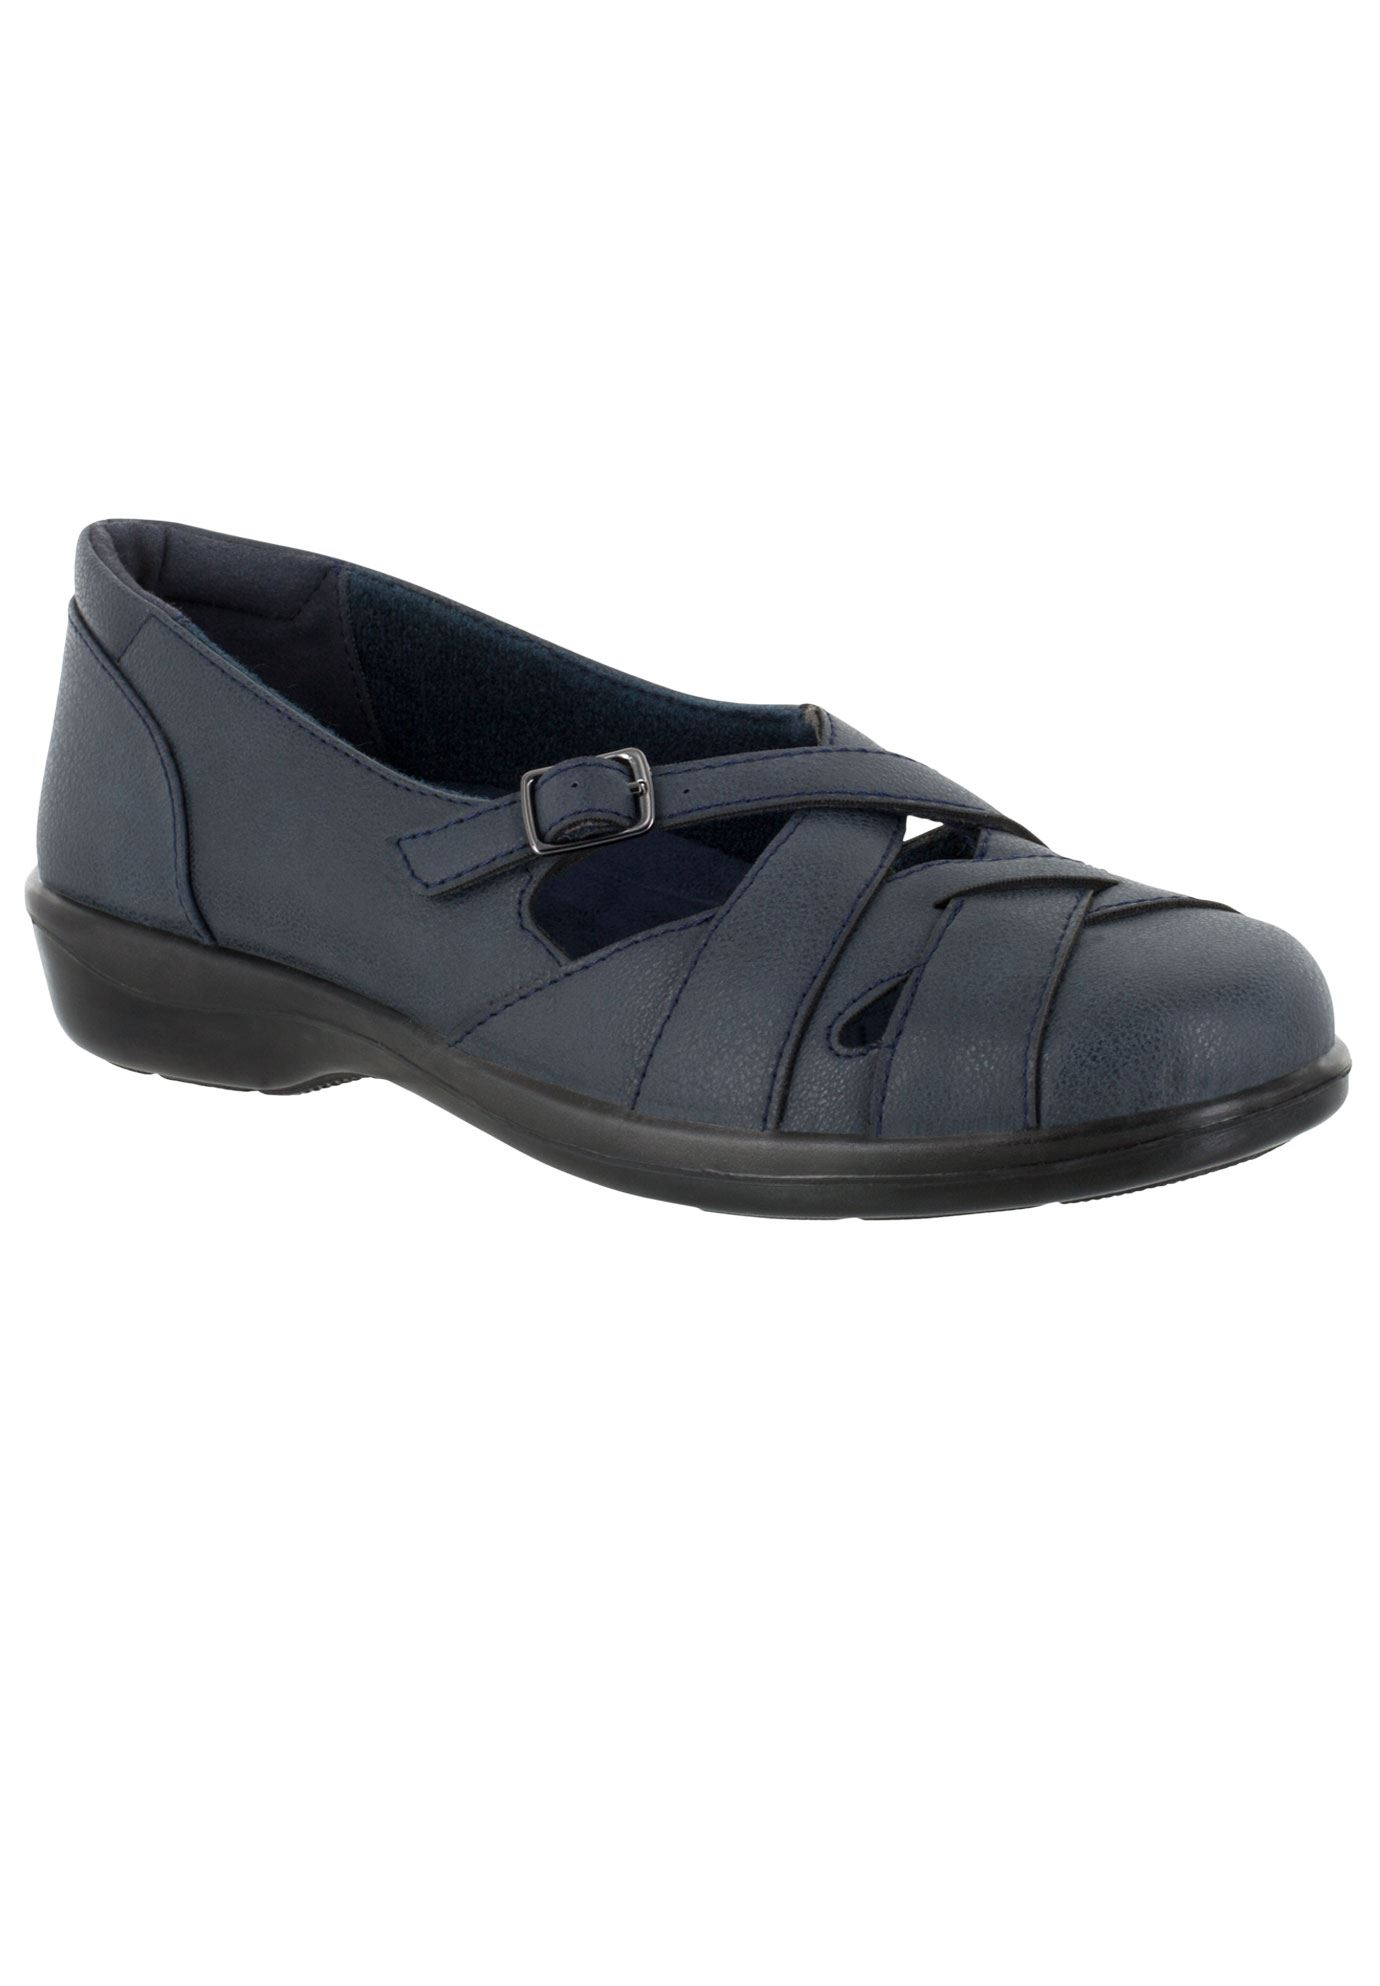 Sync Flats by Easy Street®,